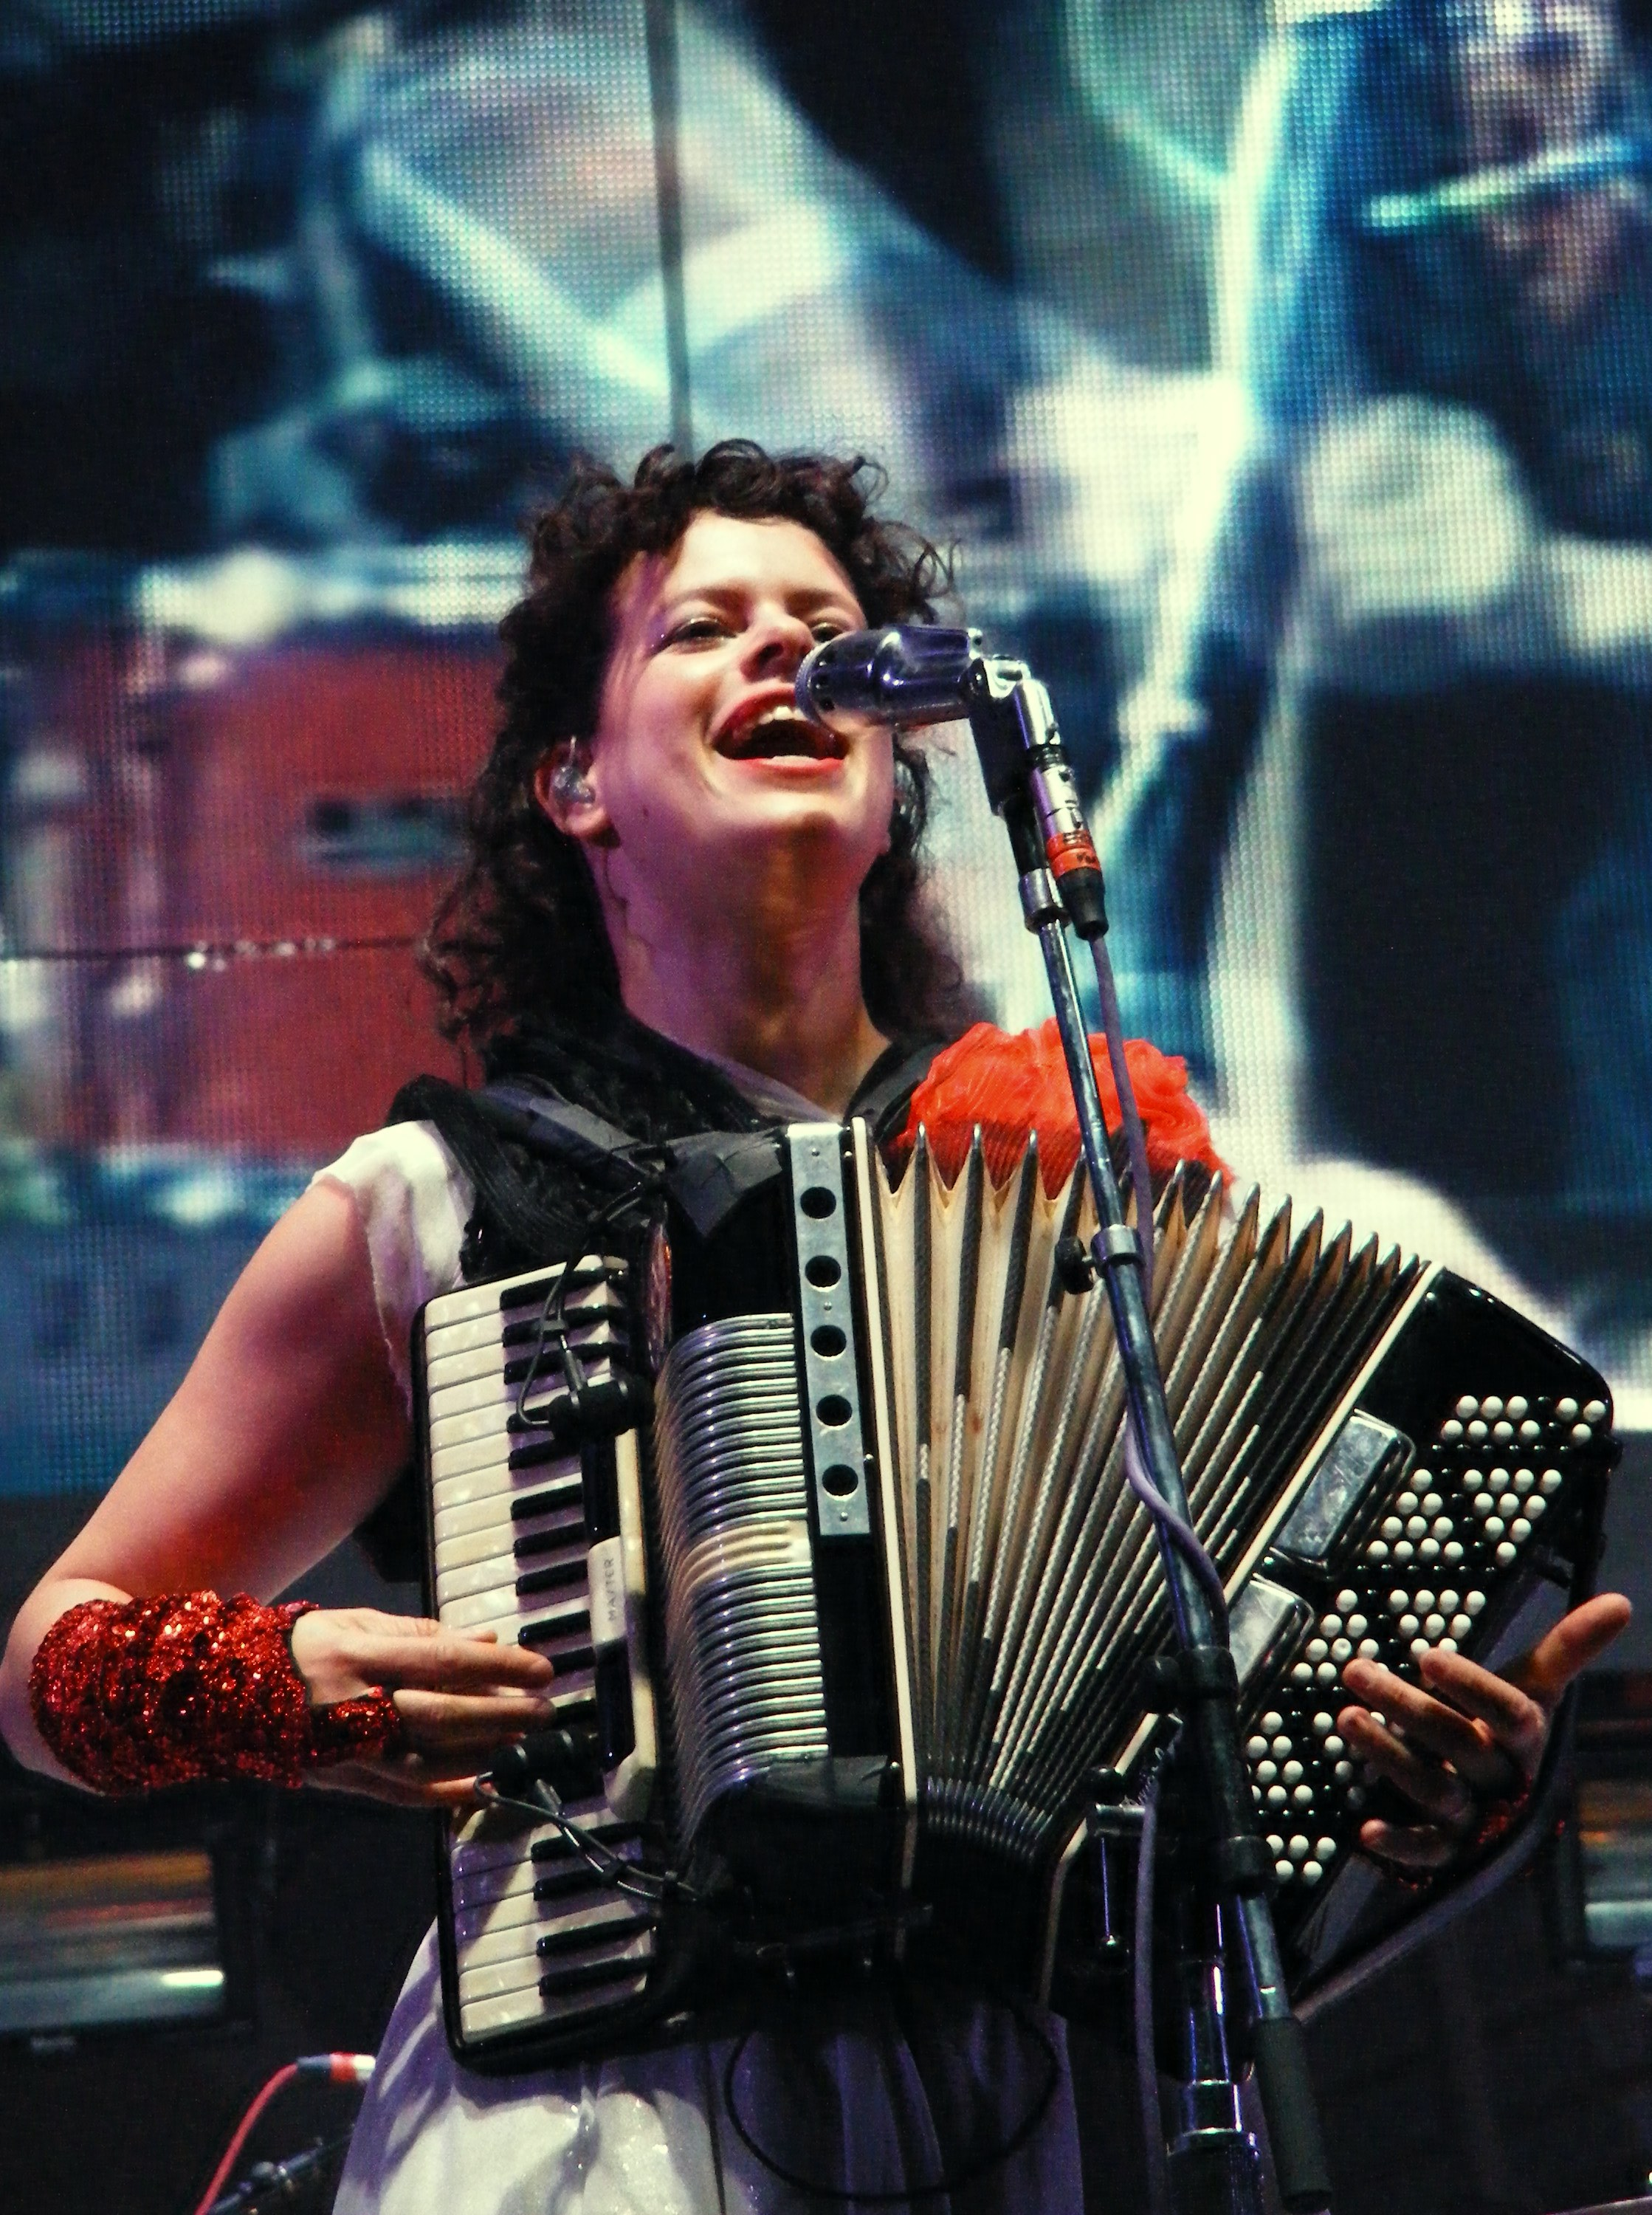 Regine Chassagne of Arcade Fire, performing in Manchester, 2010.